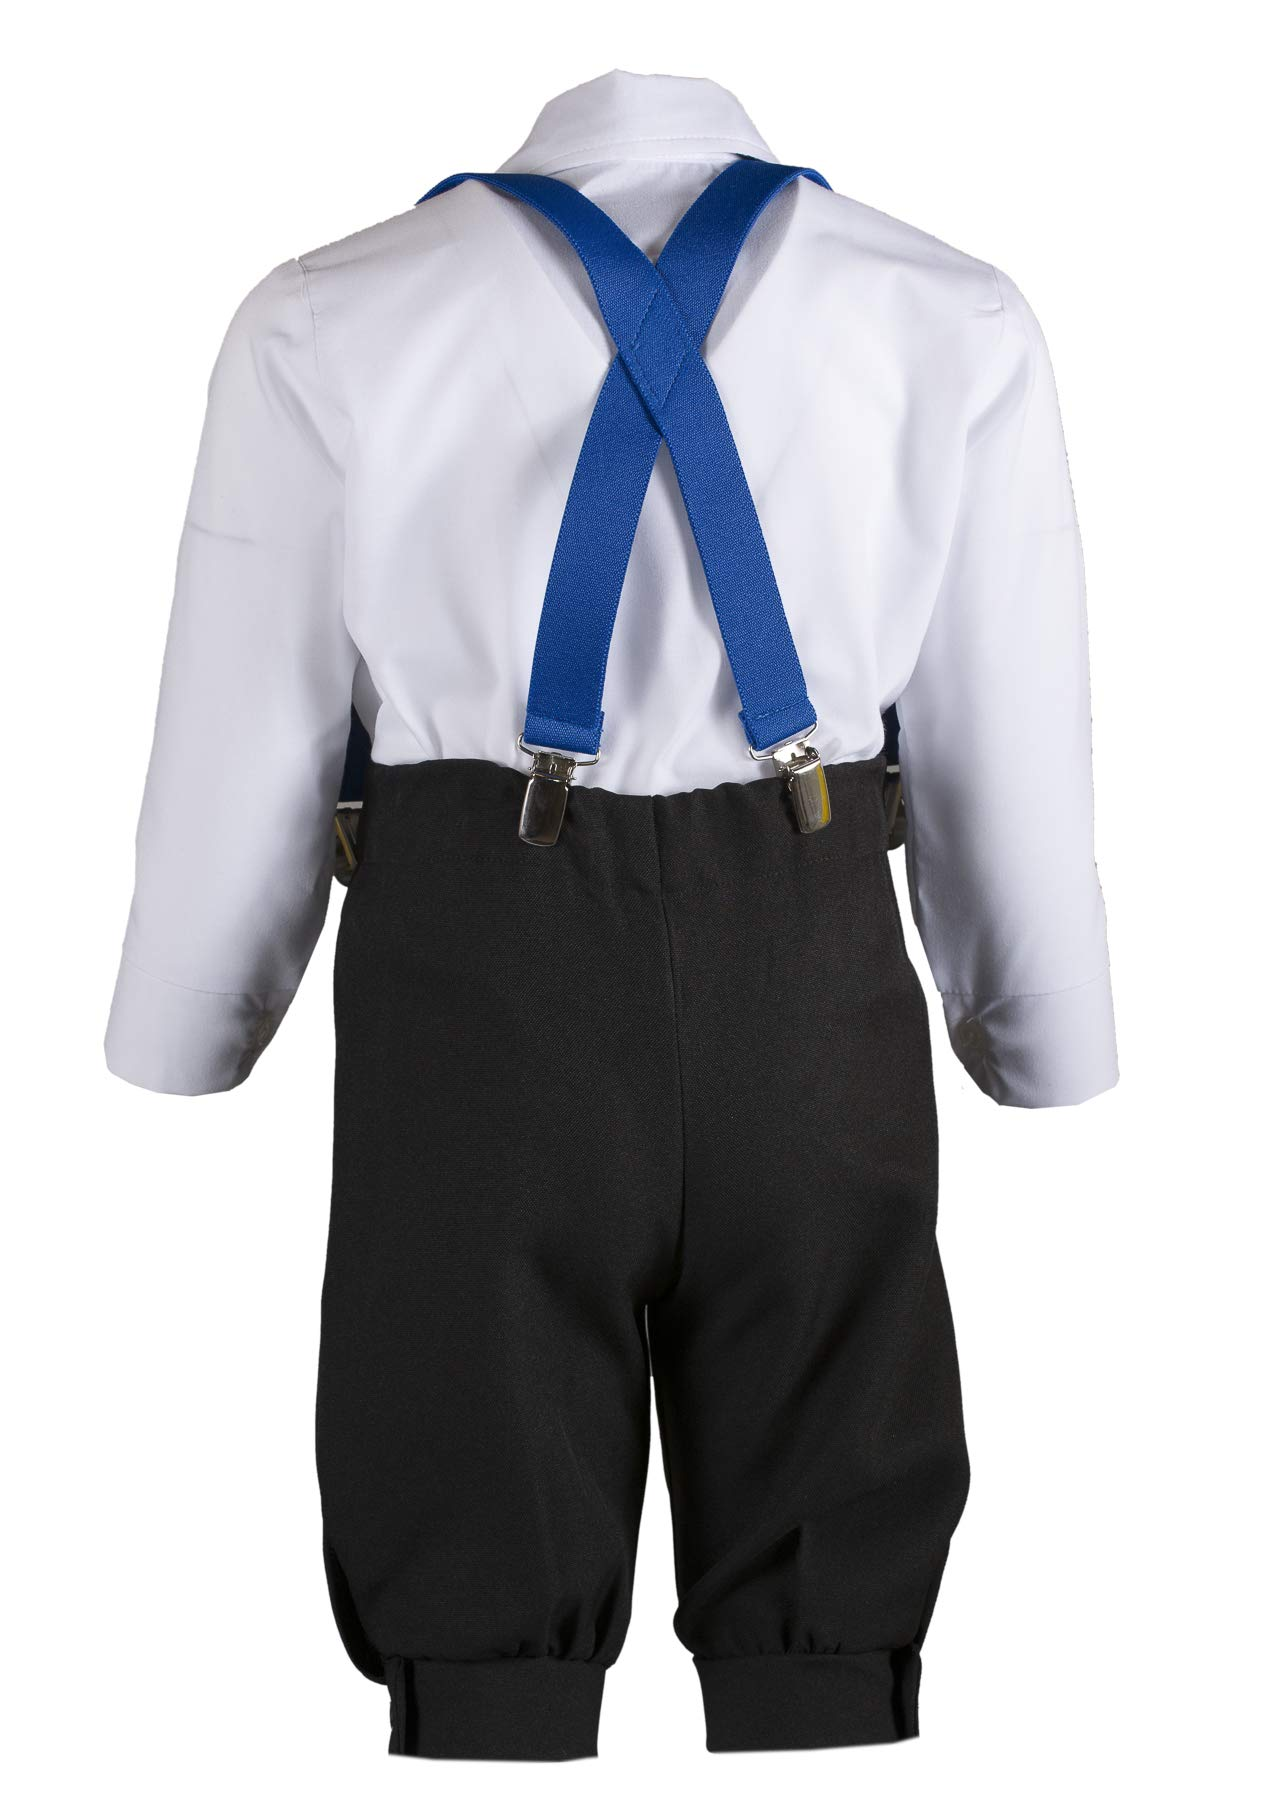 Boys Black Knickers Pageboy Cap with Royal Blue Suspenders & Snowflake Bow Tie (6B) by Tuxgear (Image #4)